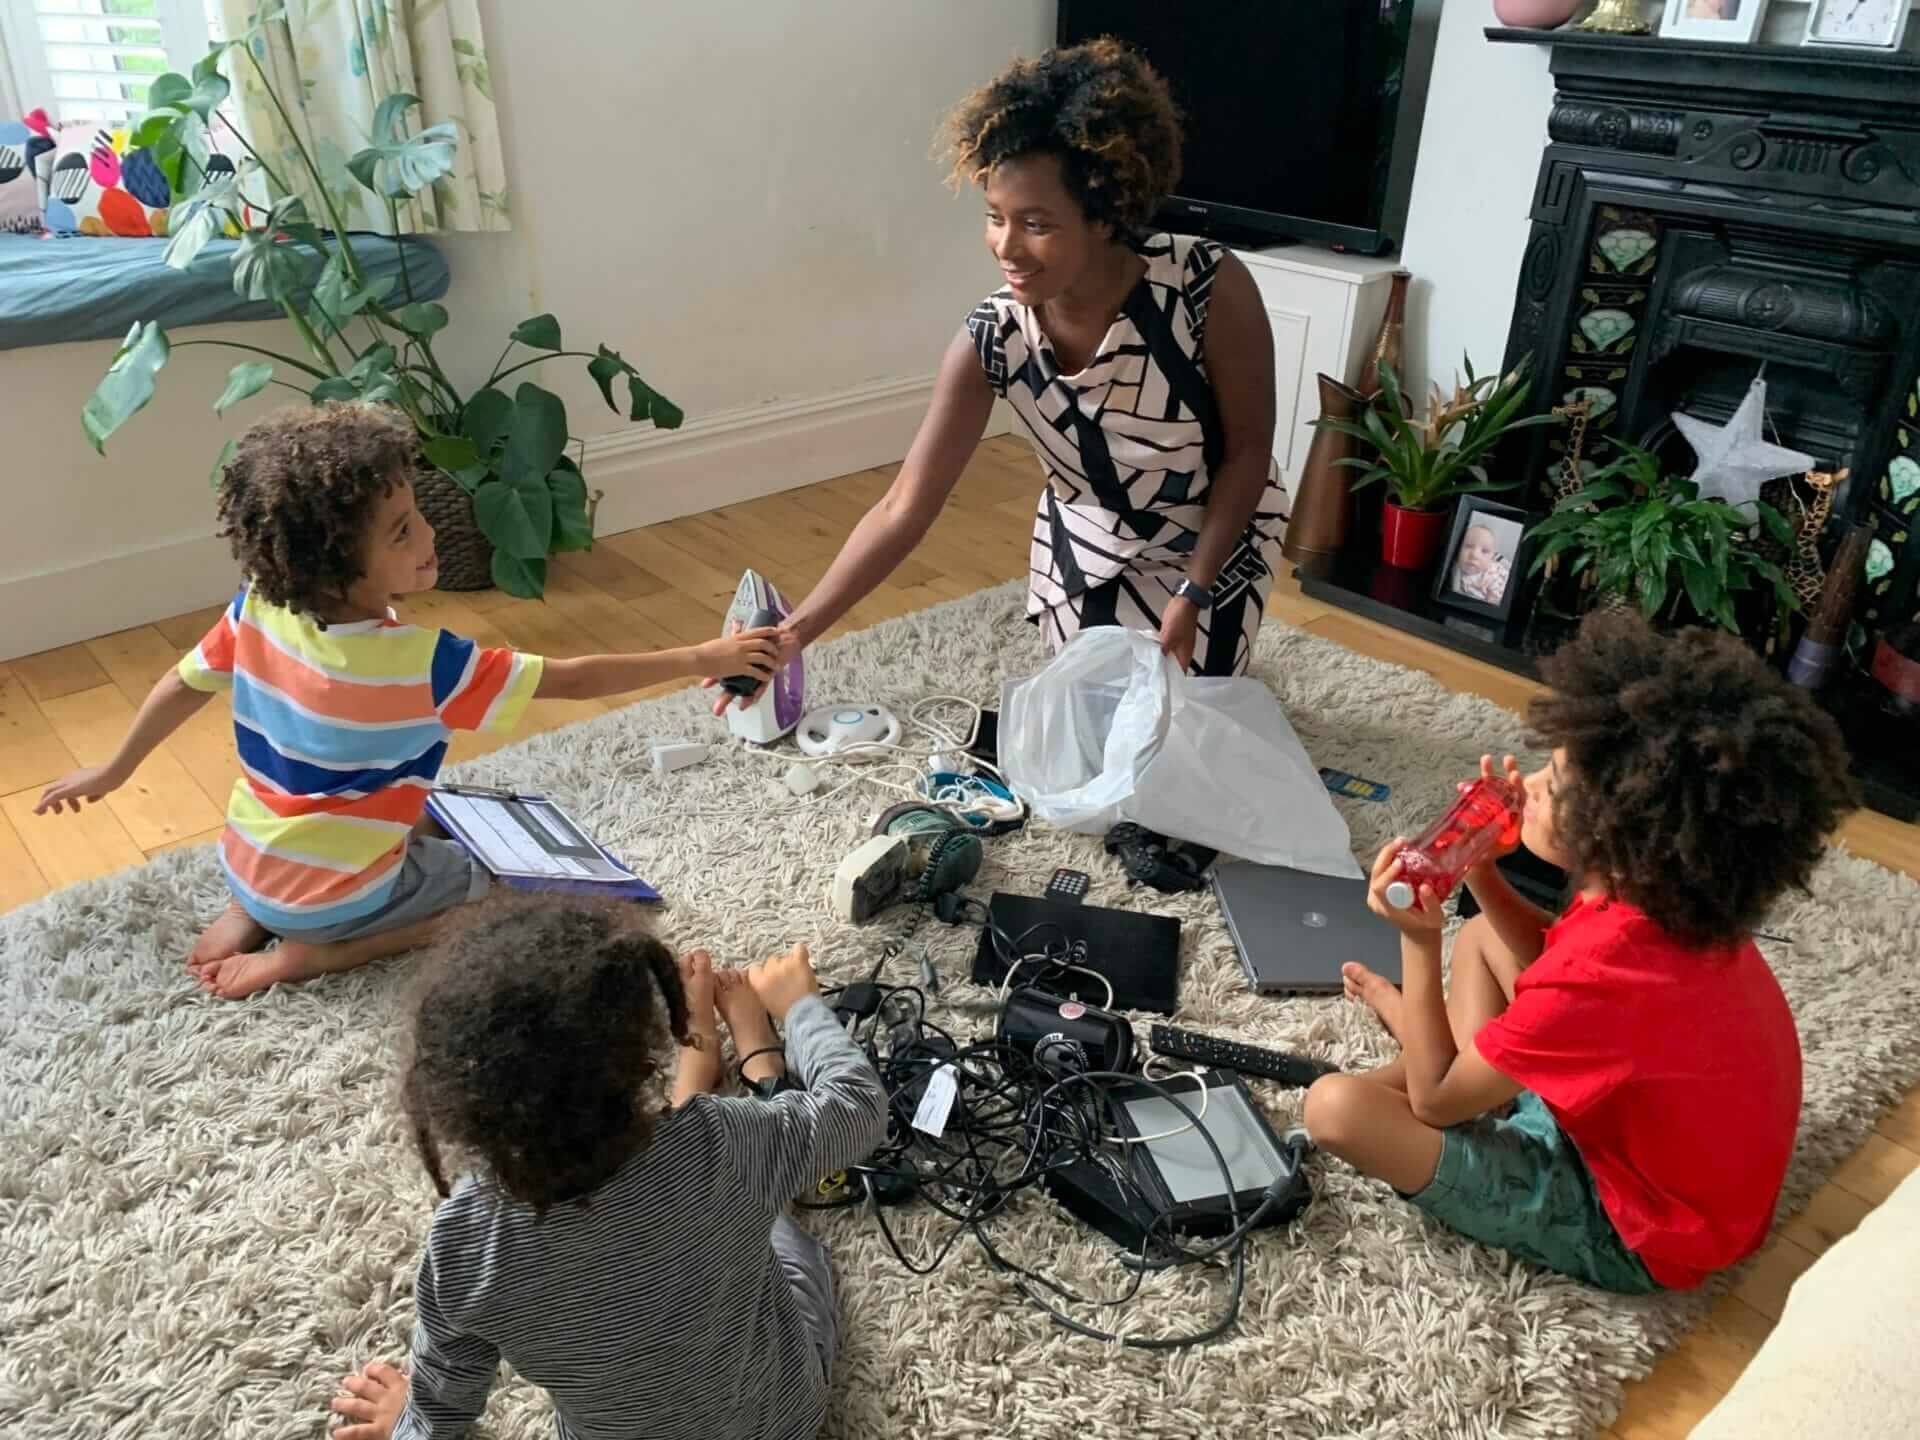 mother and children sorting old electrical items